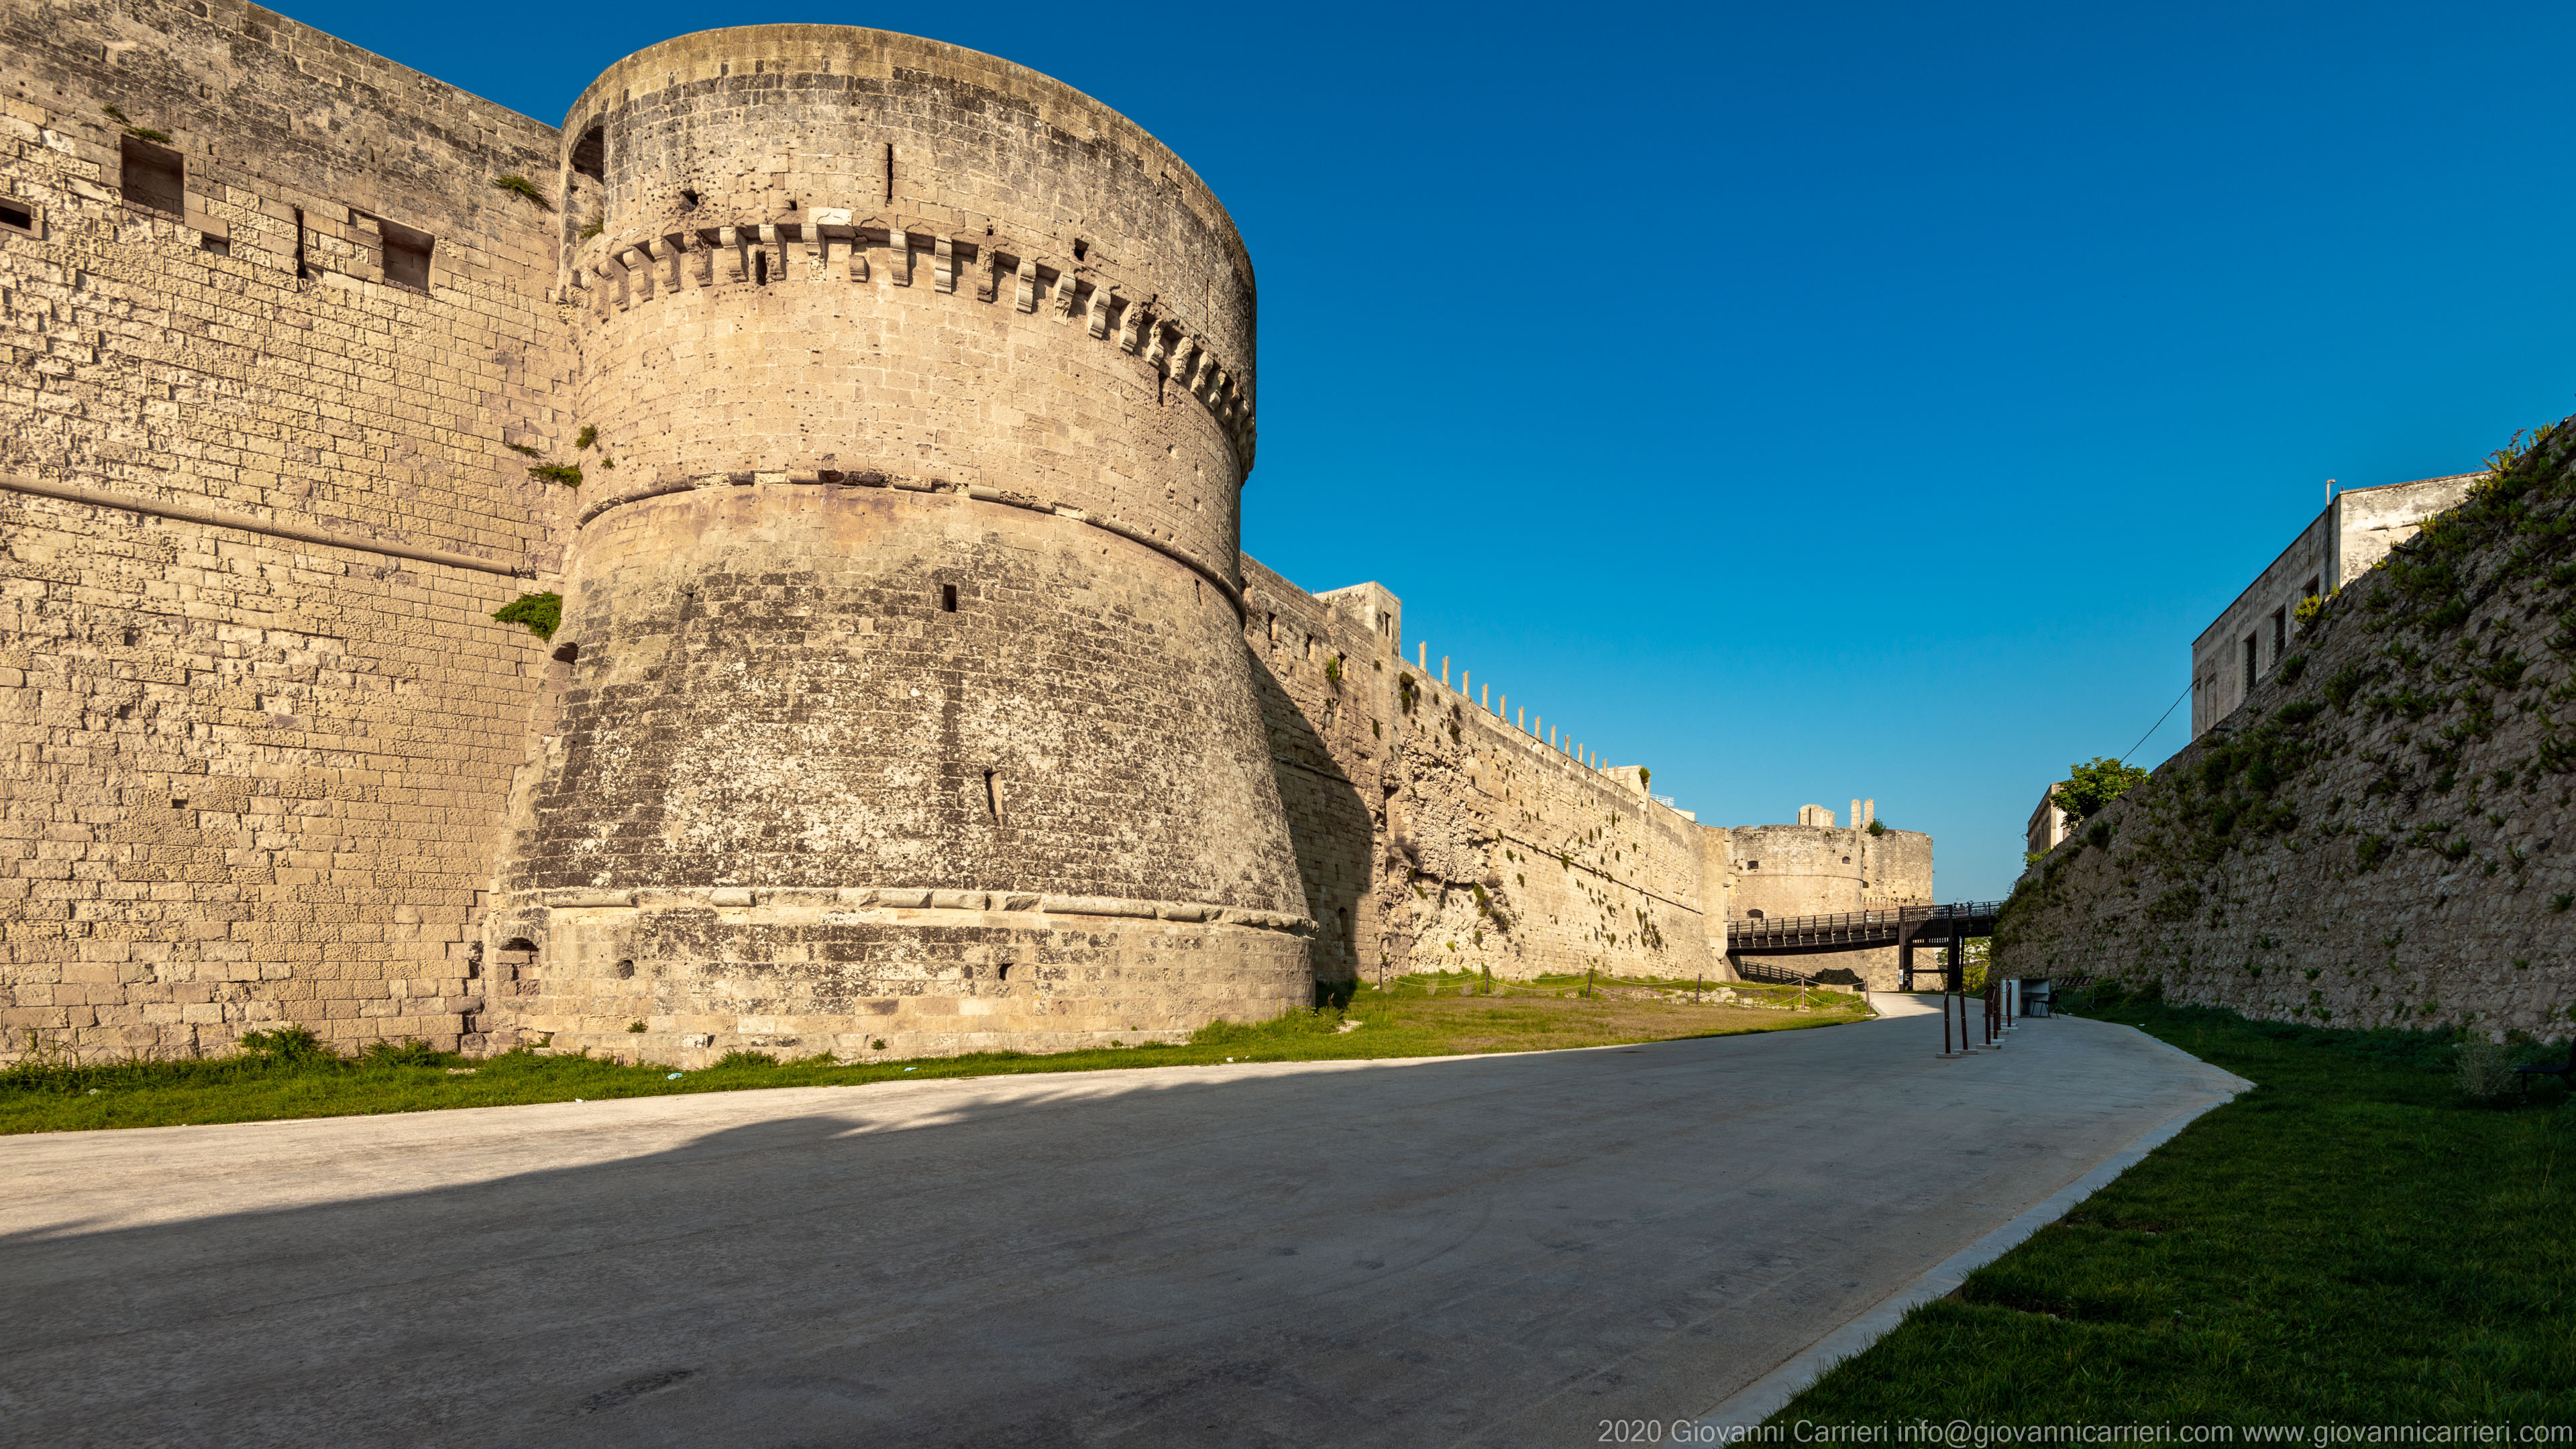 The moat of the Castle of Otranto A tower of the castle of Otranto seen from the moat